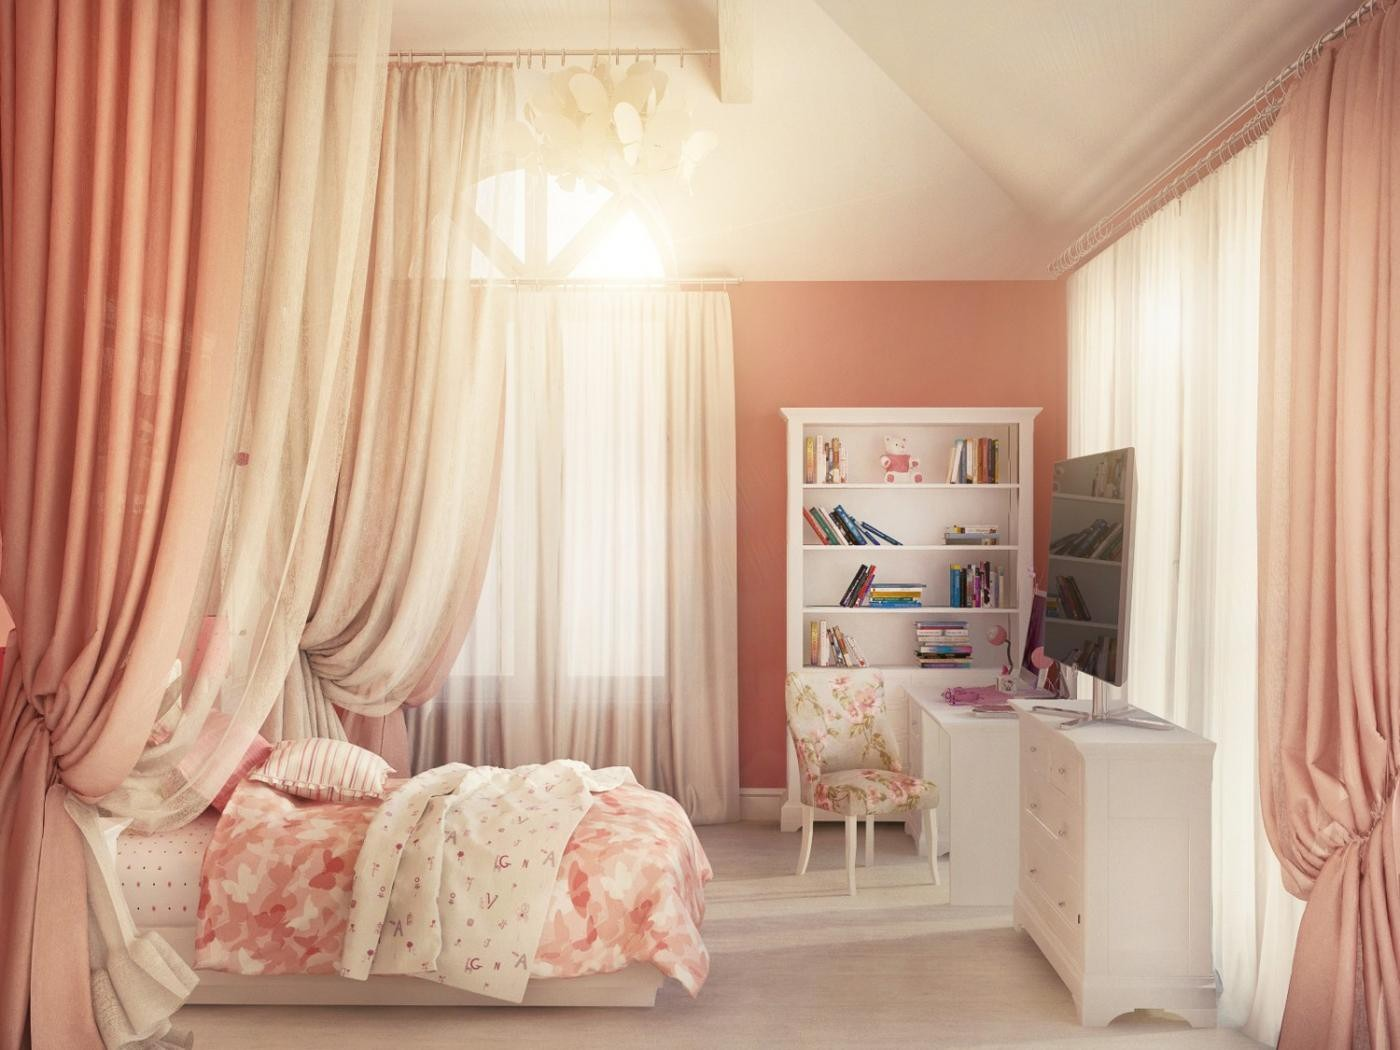 Charming girlish bedroom in muted red colors